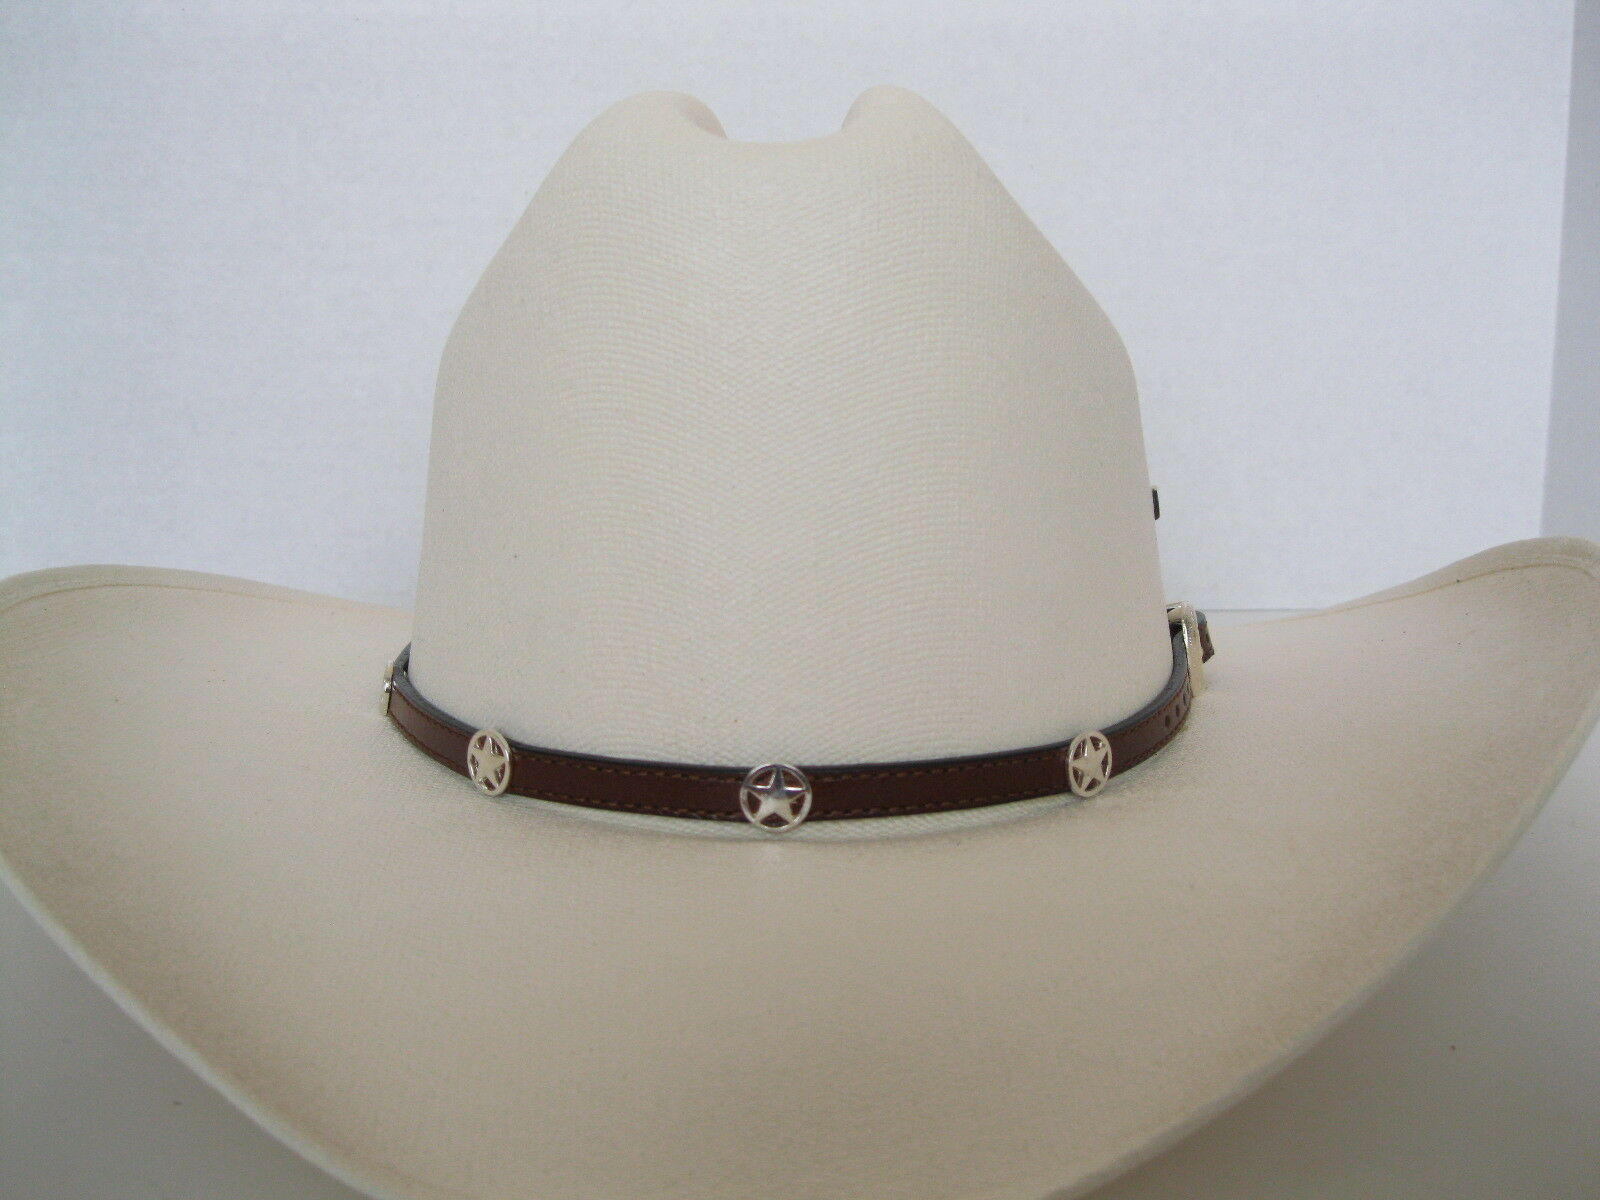 Leather Hat Band Buckle  HB51 - Star Conchos & Buckle Band - Brown 880ea8